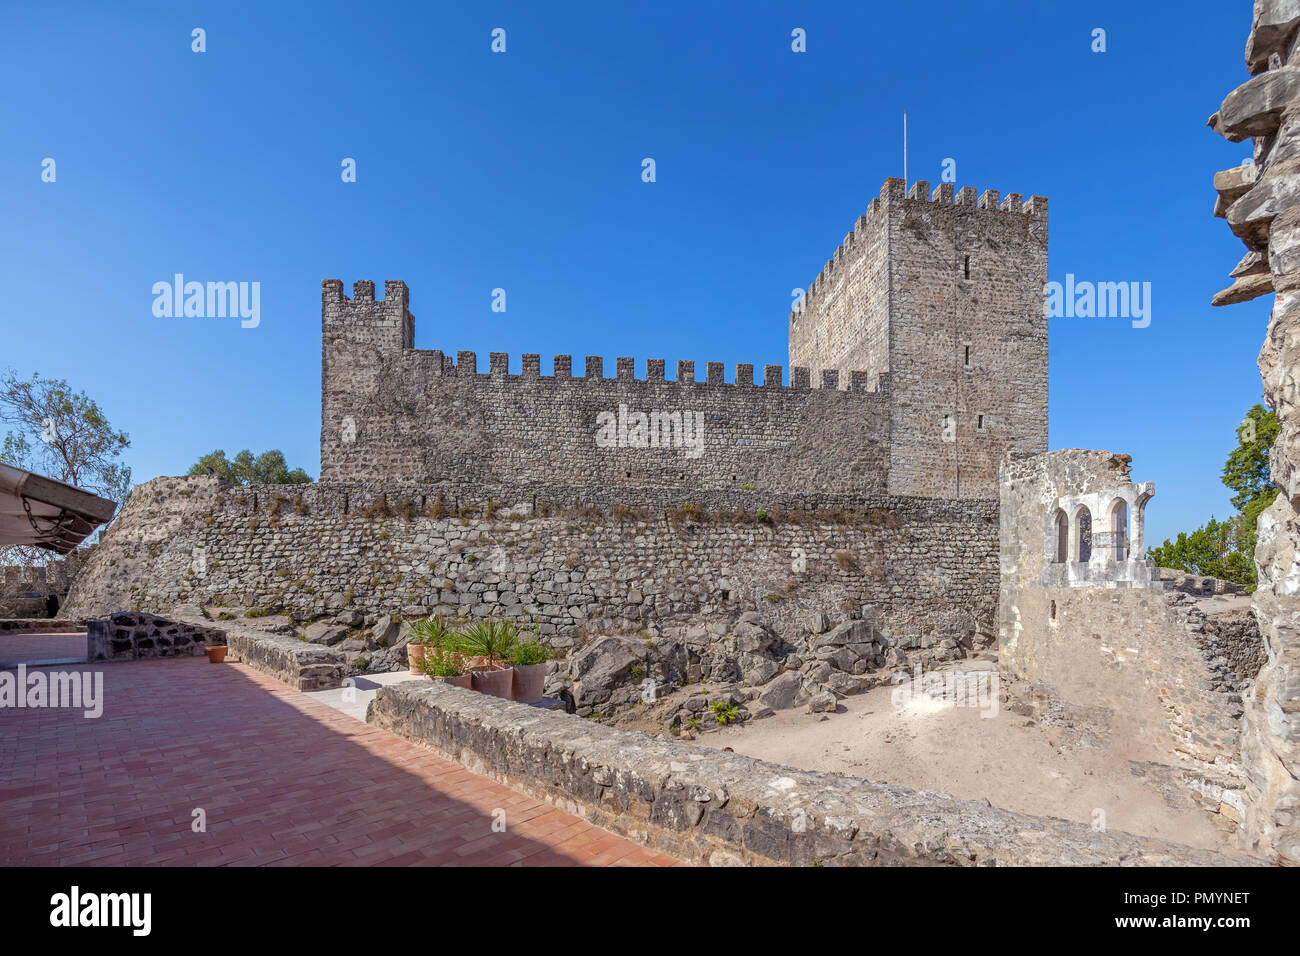 Leiria, Portugal - October 10, 2017: Keep of the medieval Castle  of Leiria seen from the Palatial Residence. Belonged to the Knights Templar. - Stock Image